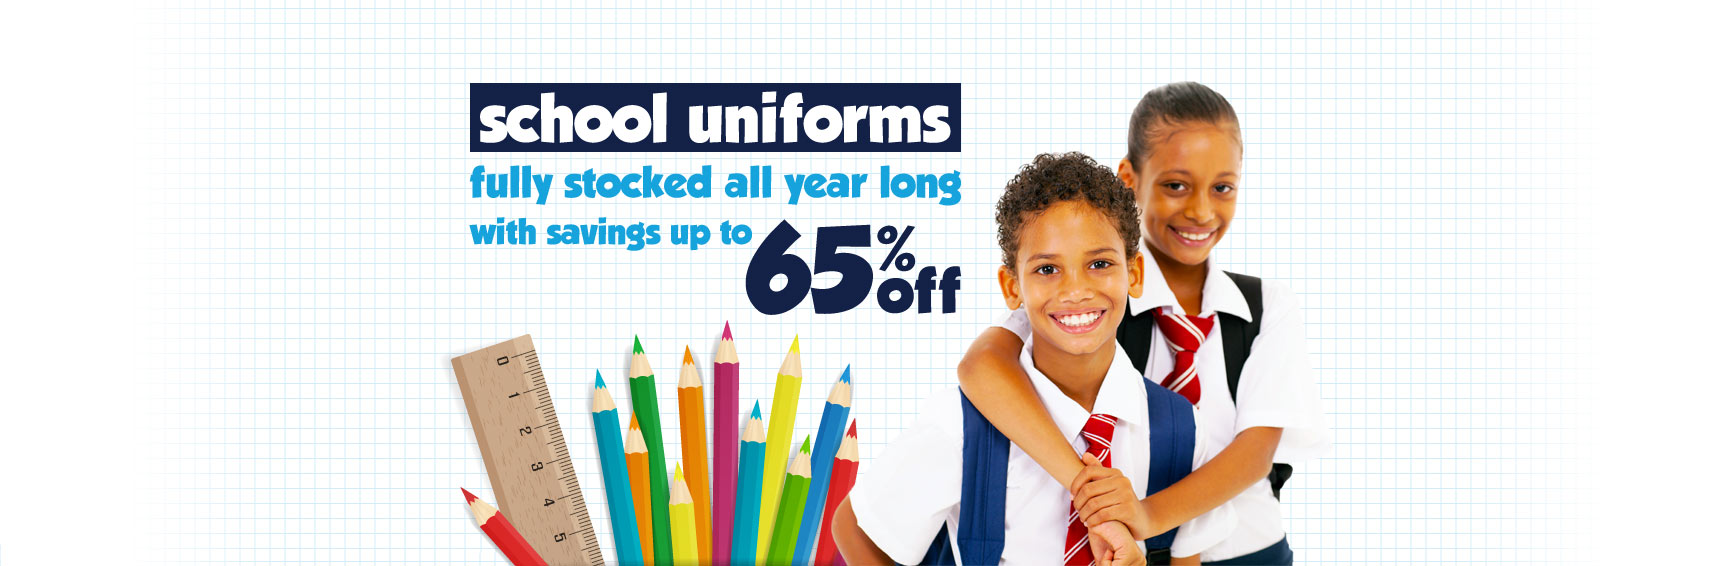 Shop Boys and Girls School Uniforms